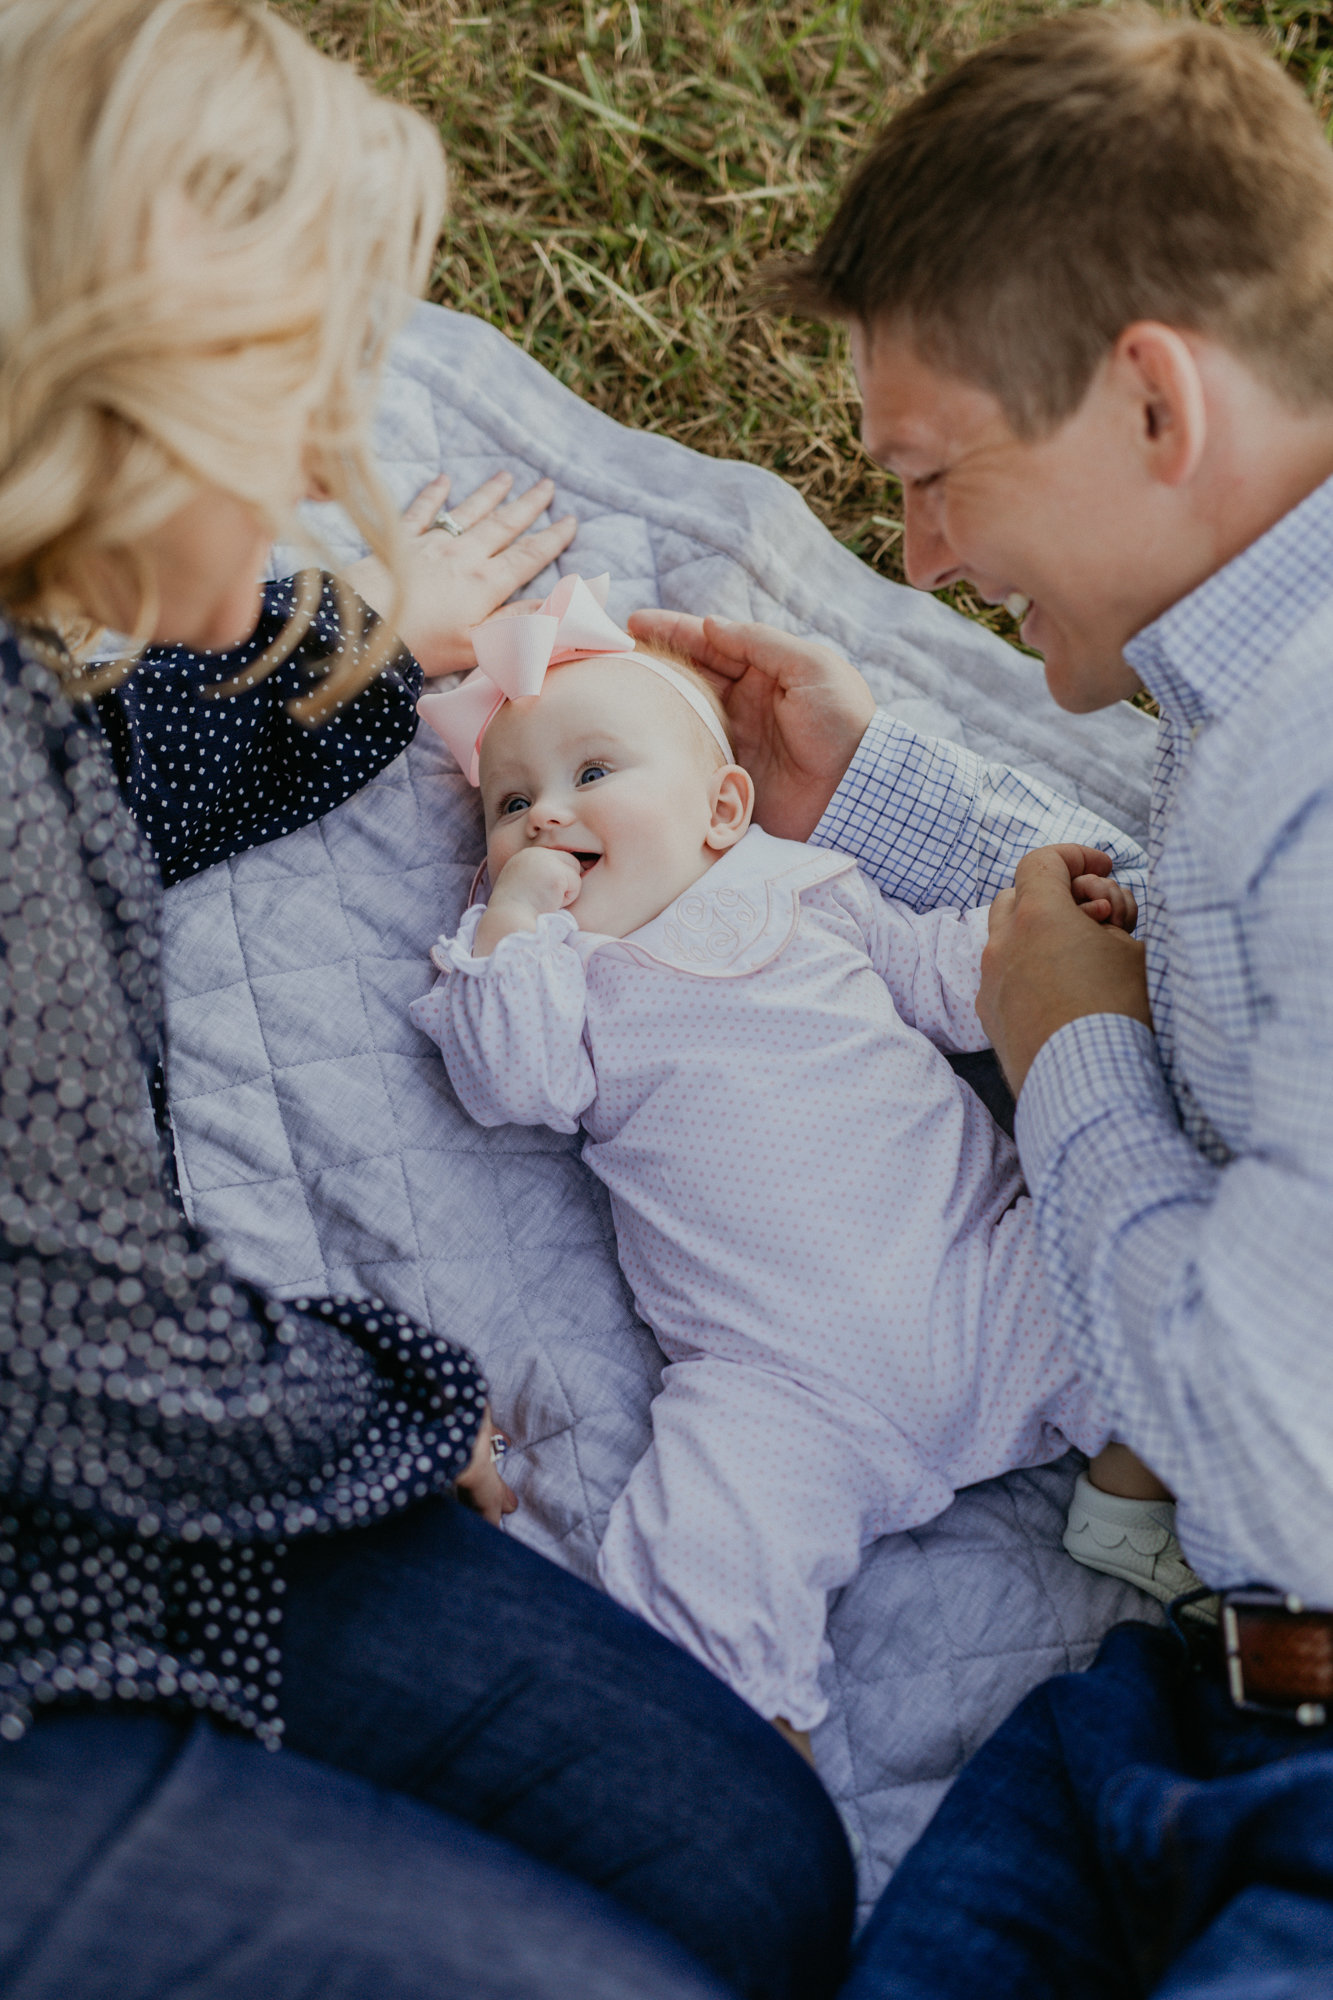 family-photographer-nashville-Darcy-Ferris-Photography52